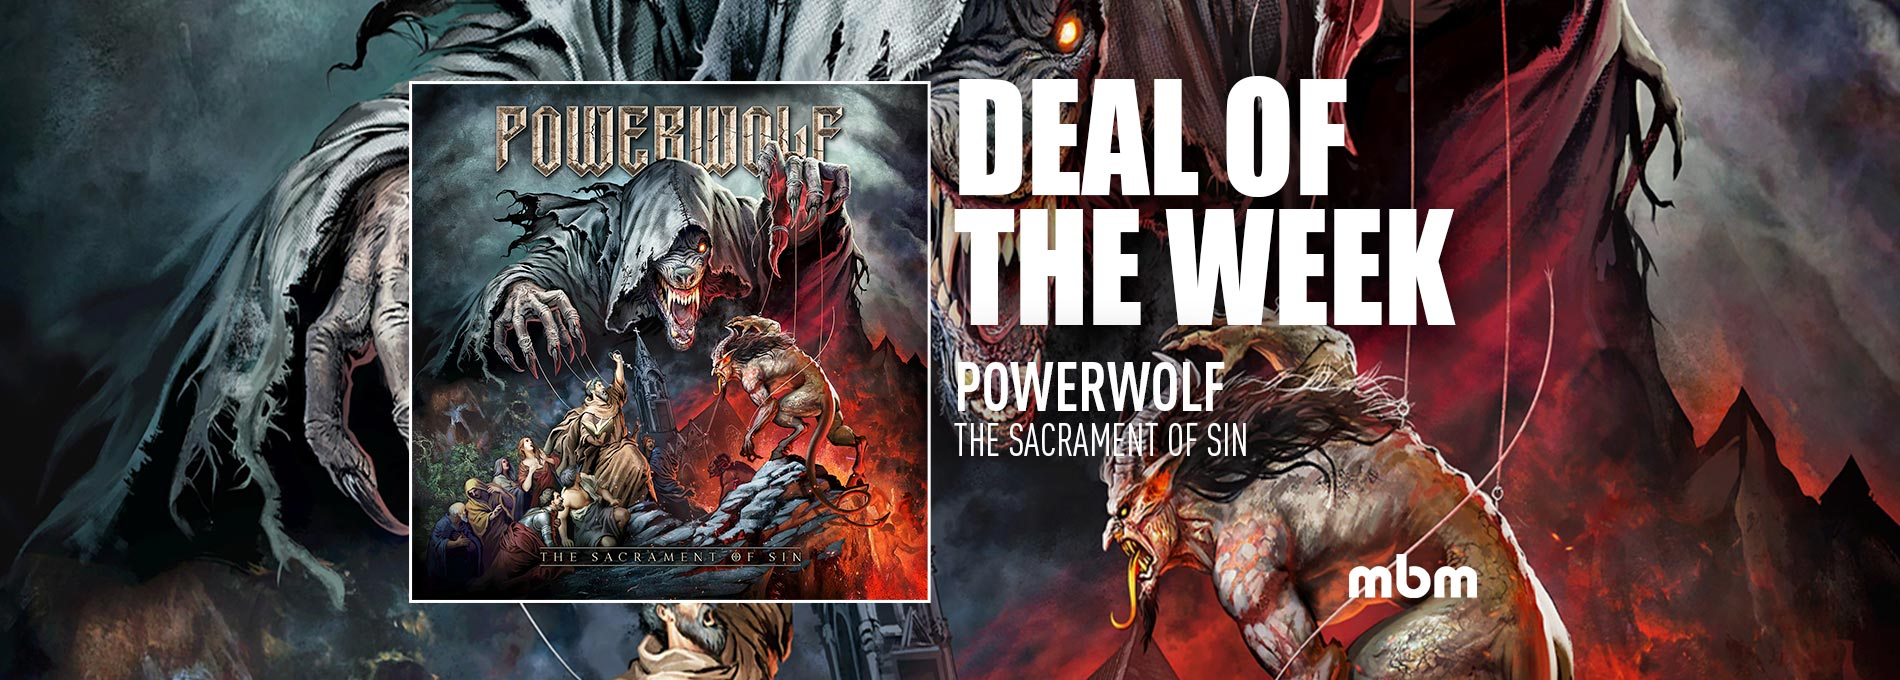 Deal Of The Week: POWERWOLF - The Sacrament Of Sin